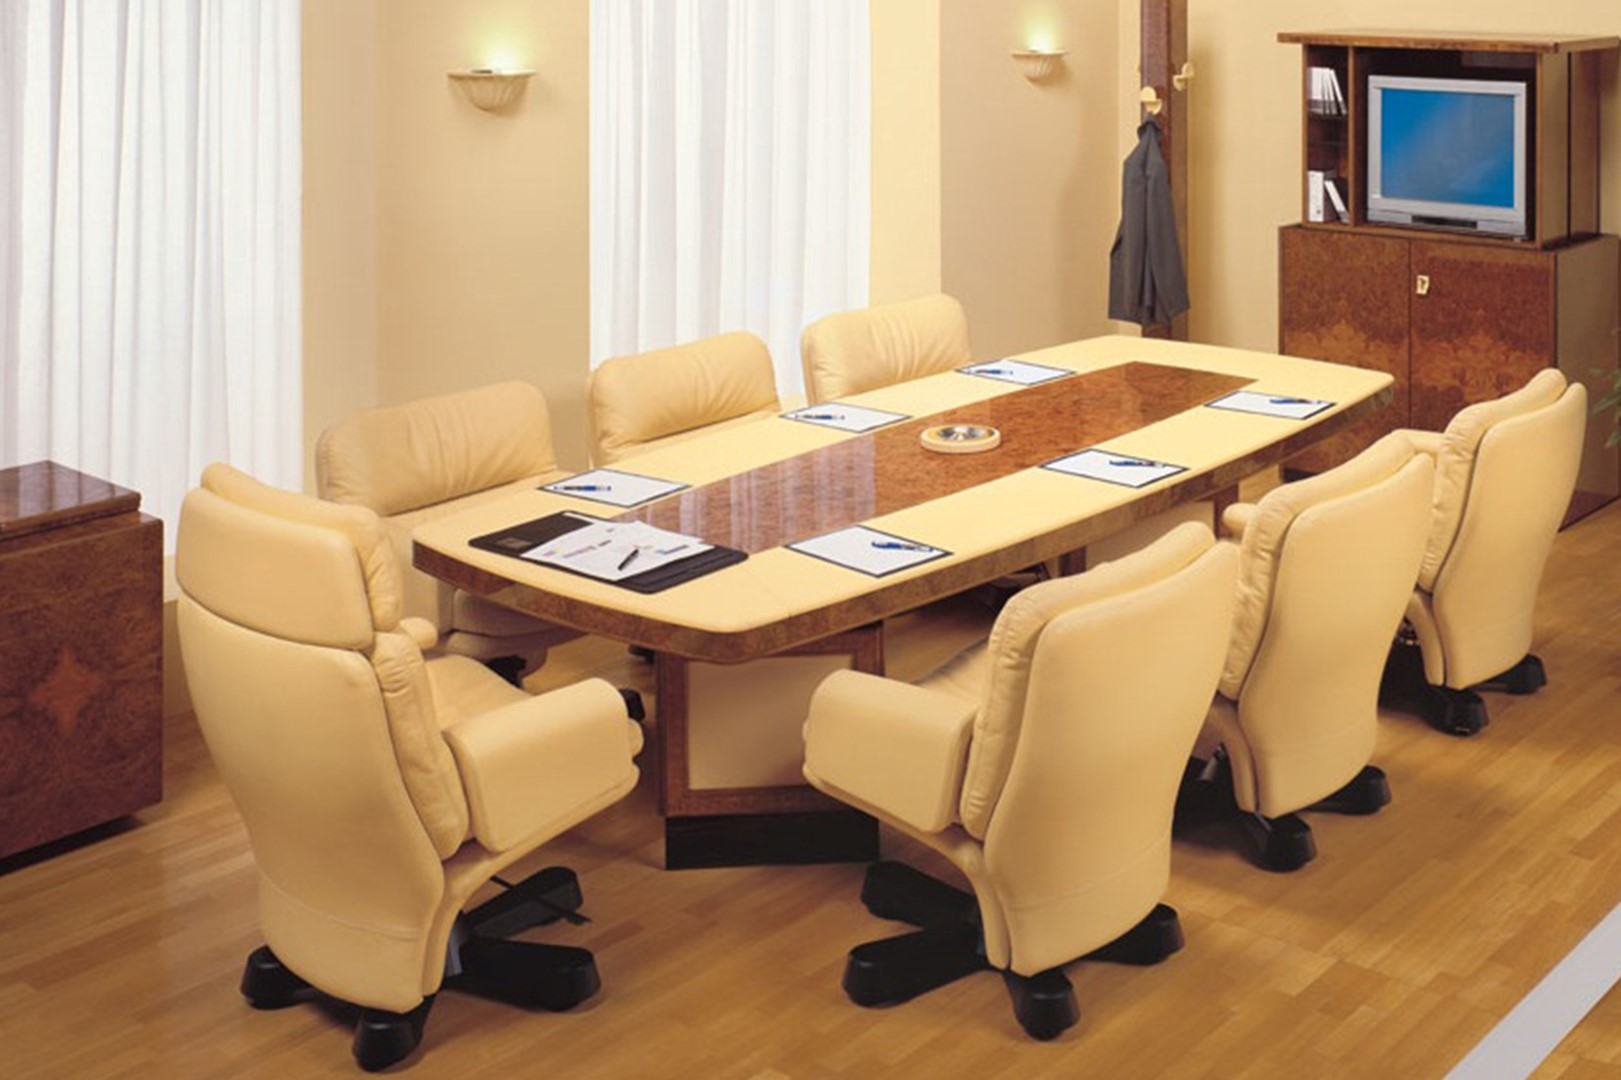 furniture_0000_3.d.meeting table_luxury office furniture_high officials (5)